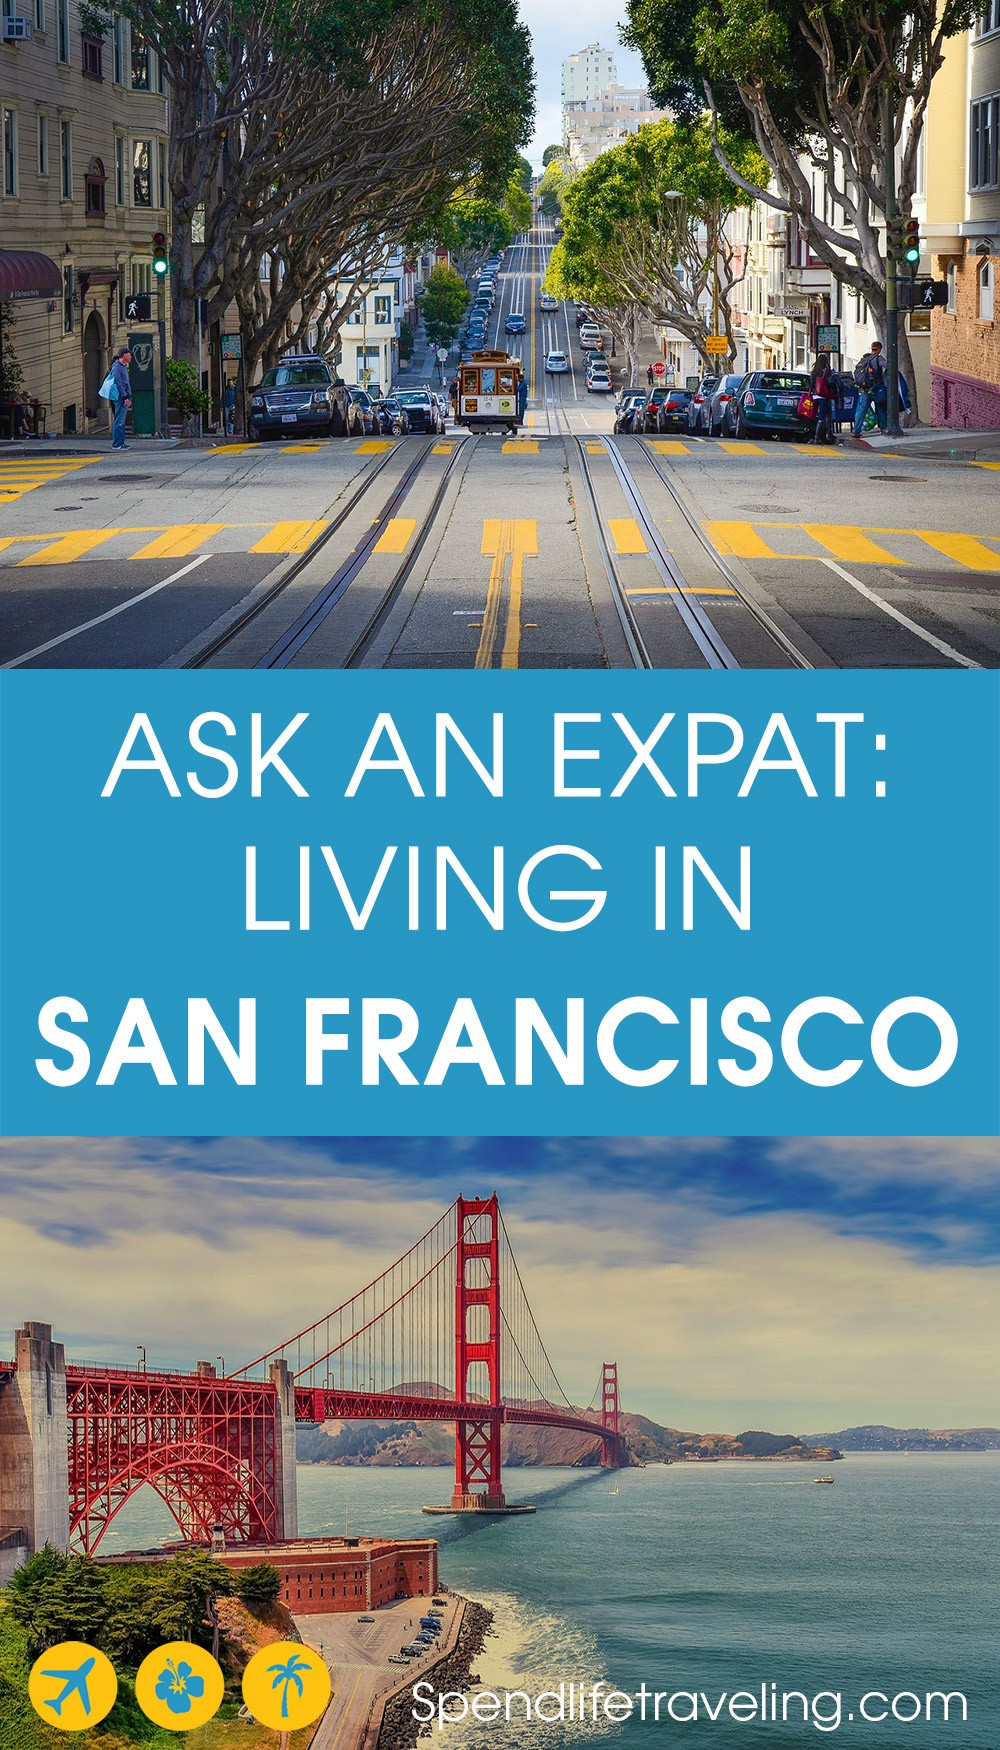 #expat life in San Francisco, California. #SanFrancisco